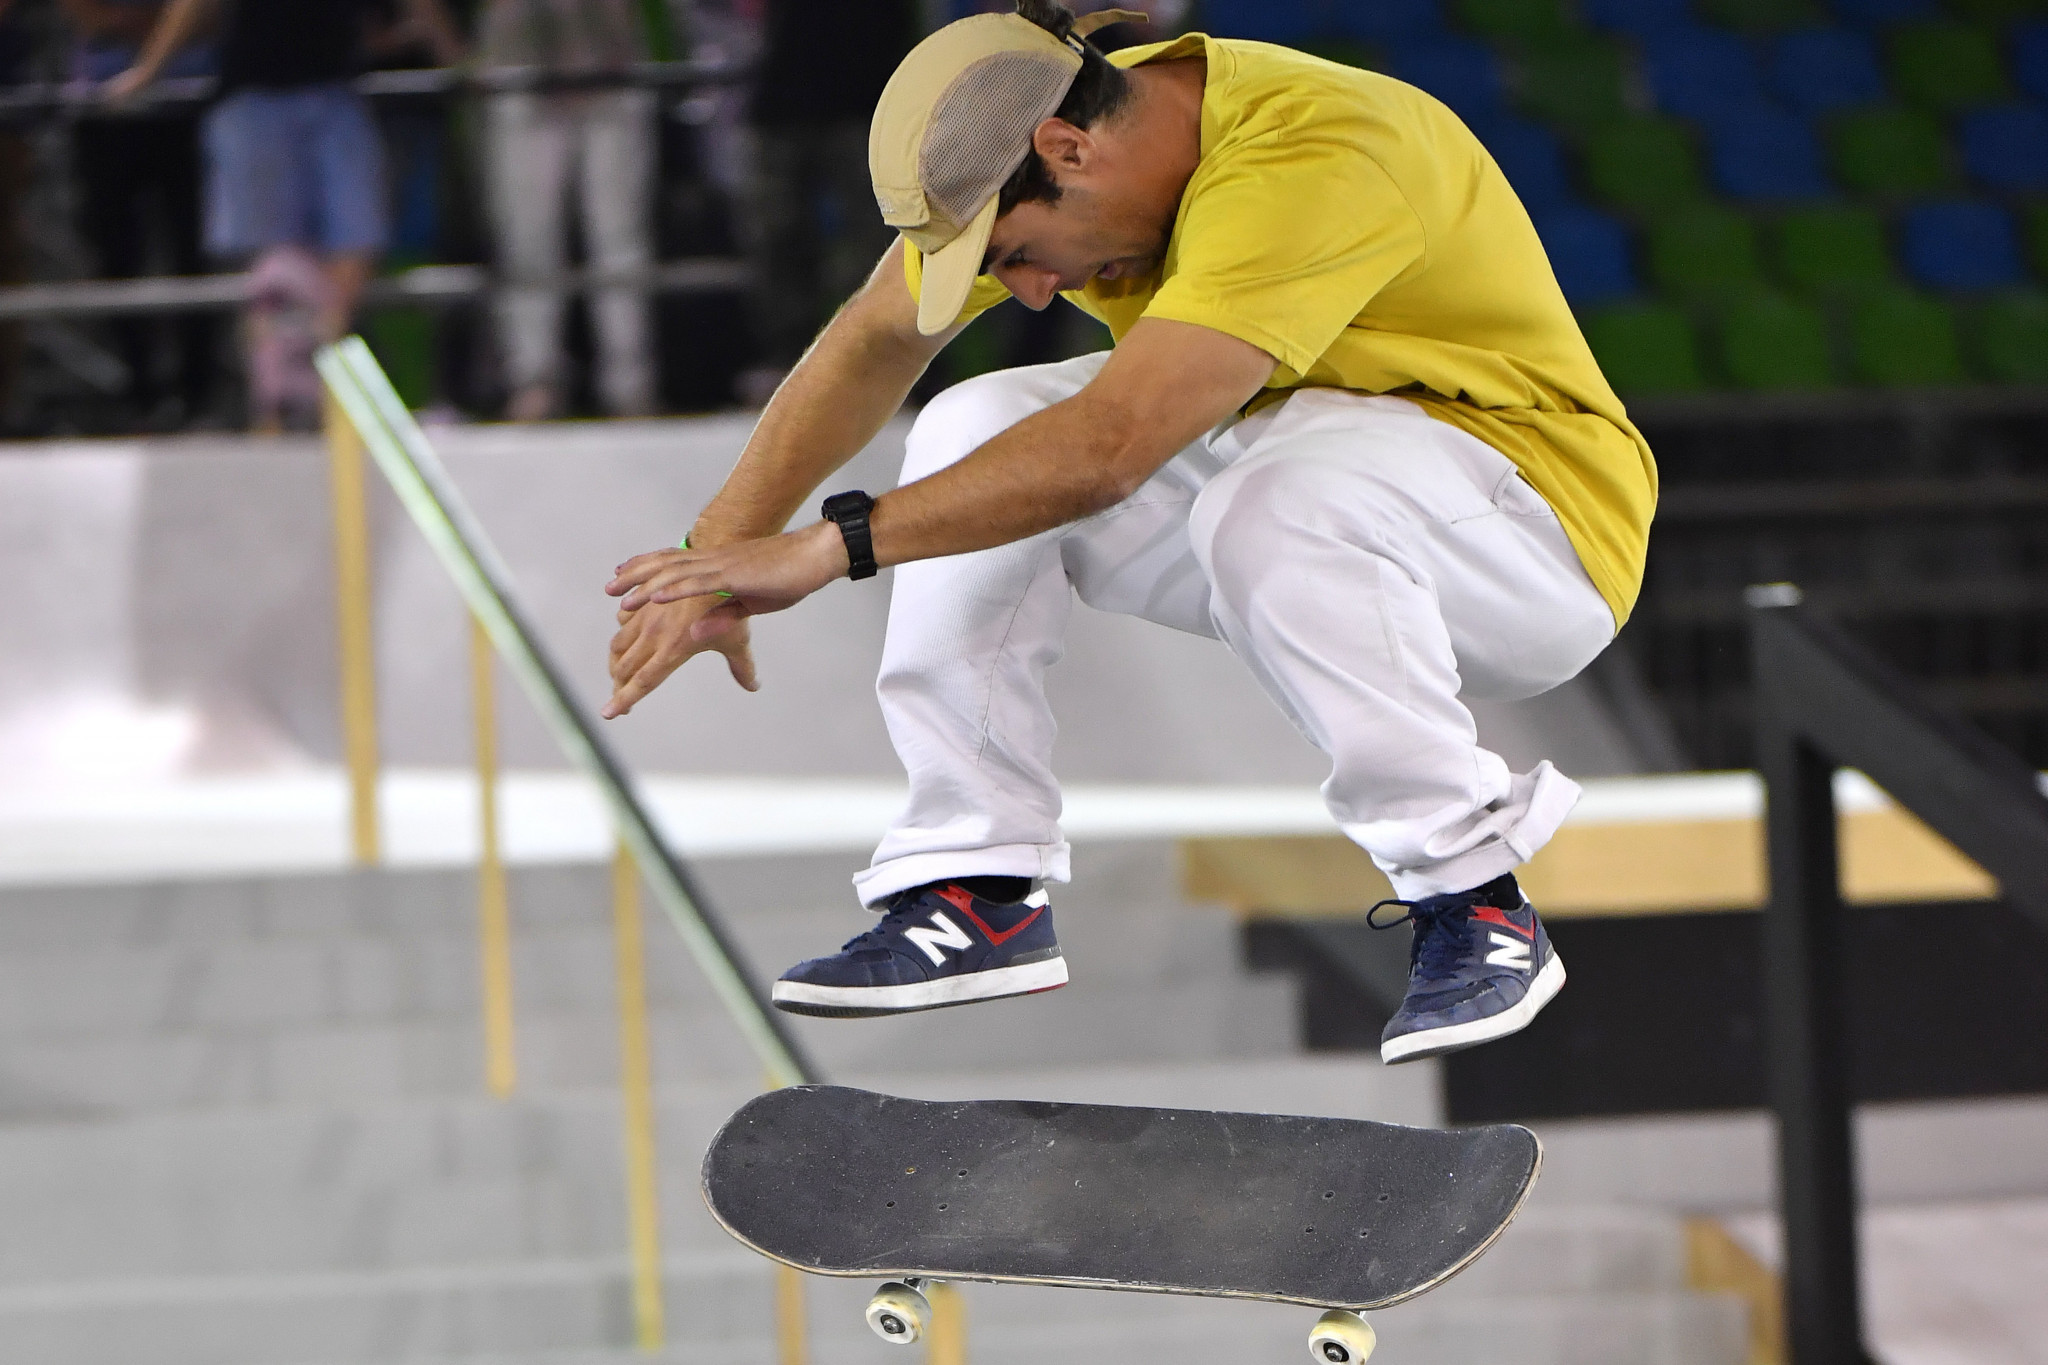 IOC approves skateboarding rule changes for Tokyo 2020 qualification